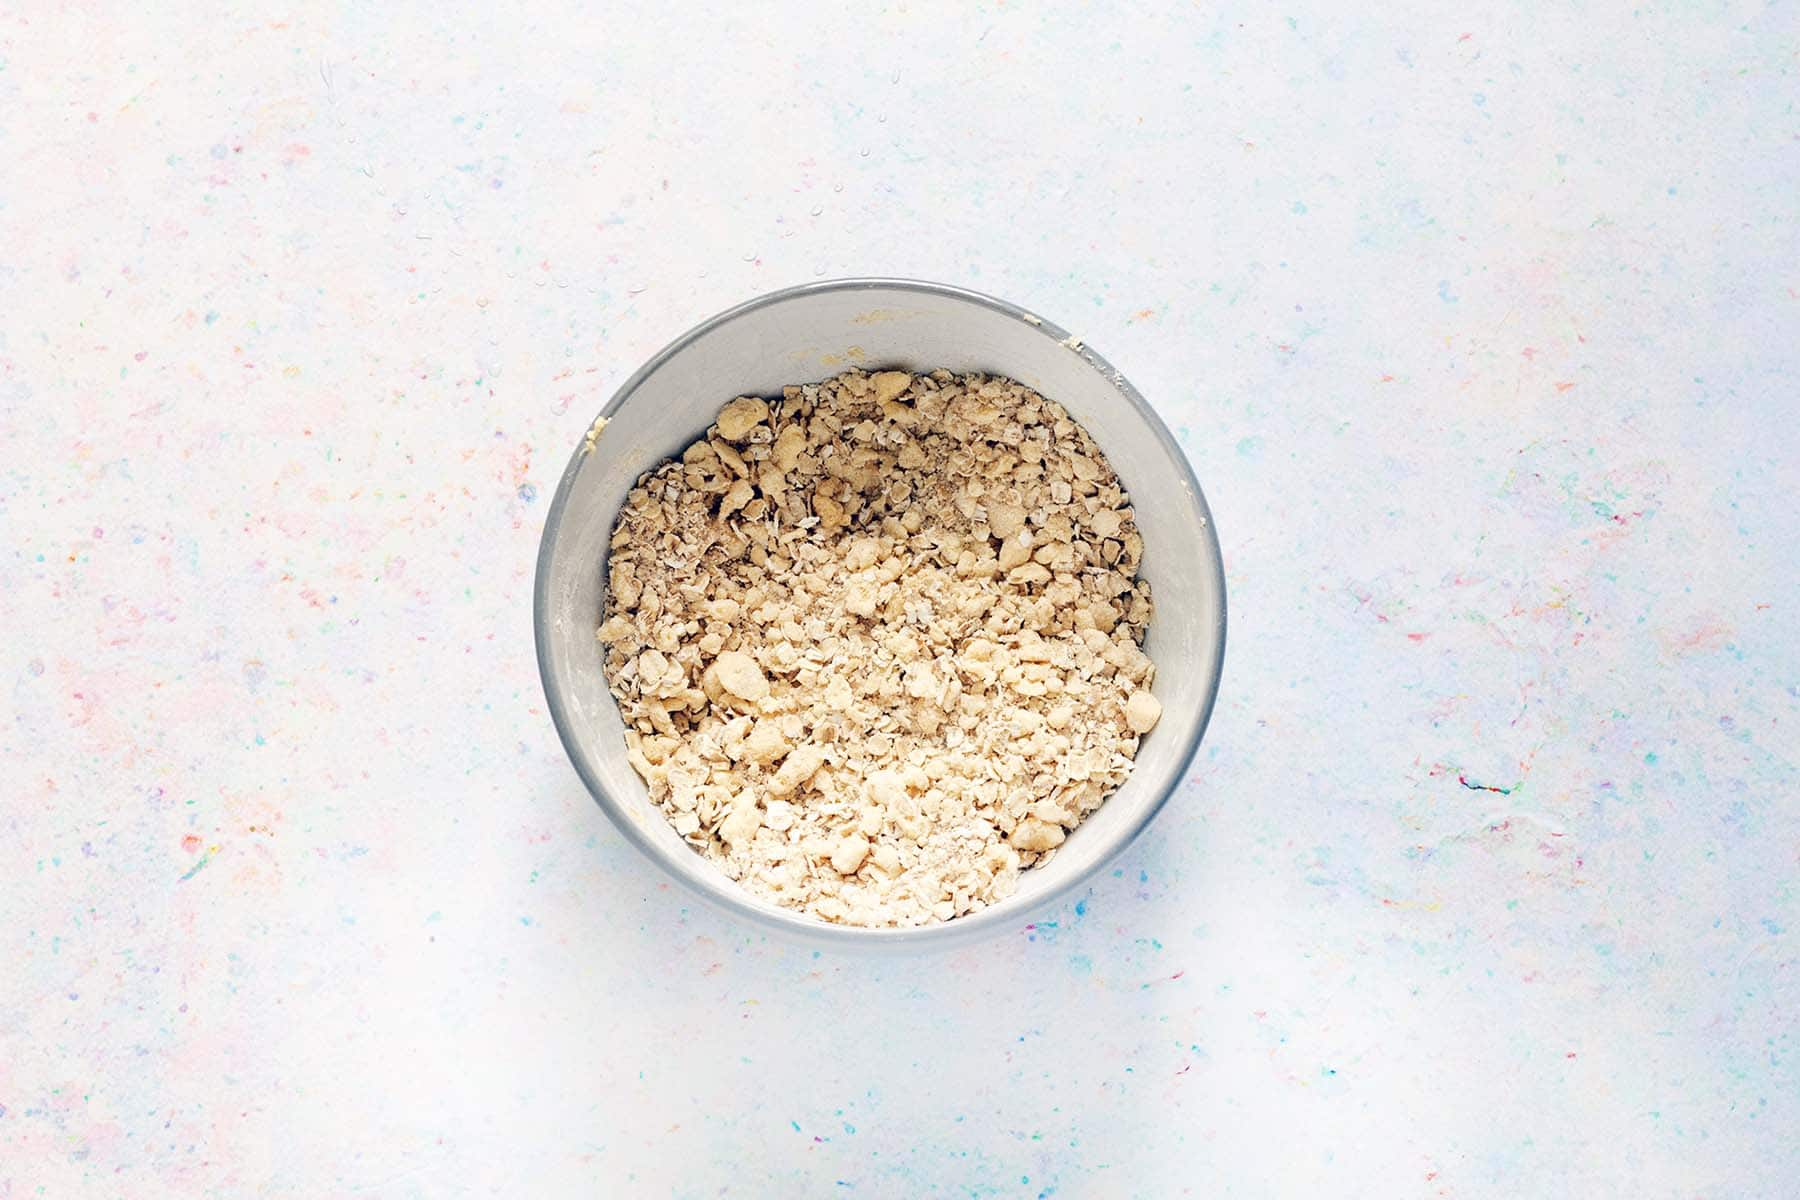 crumble topping in bowl